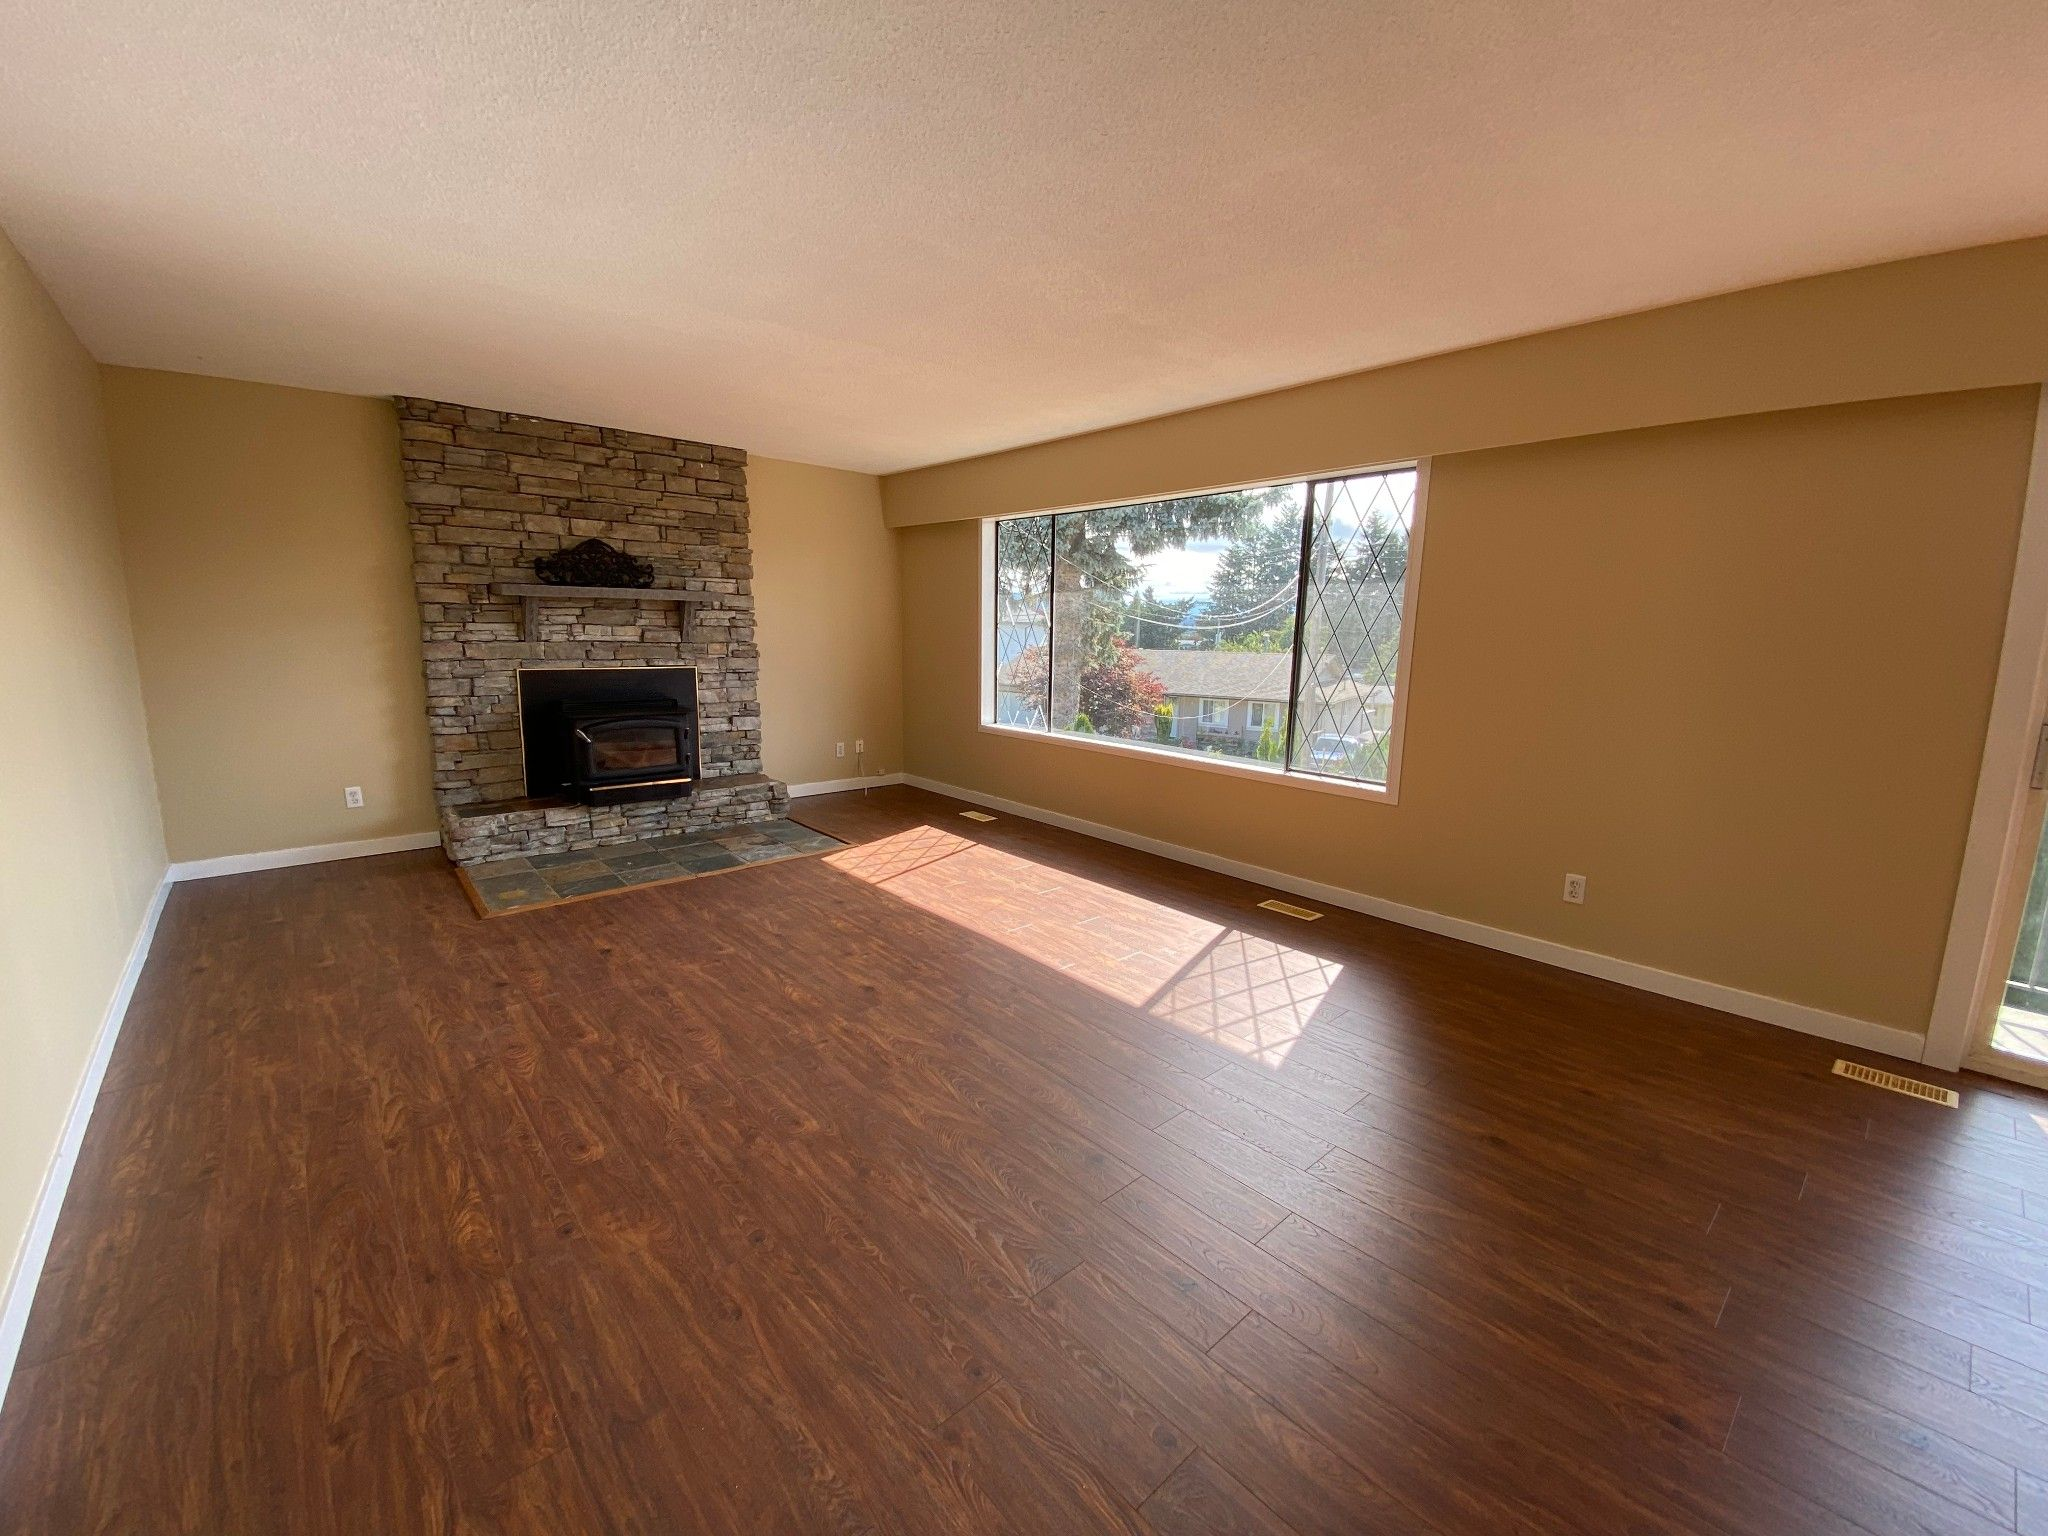 Photo 2: Photos: 2043 Majestic Cr. in Abbotsford: Abbotsford West House for rent